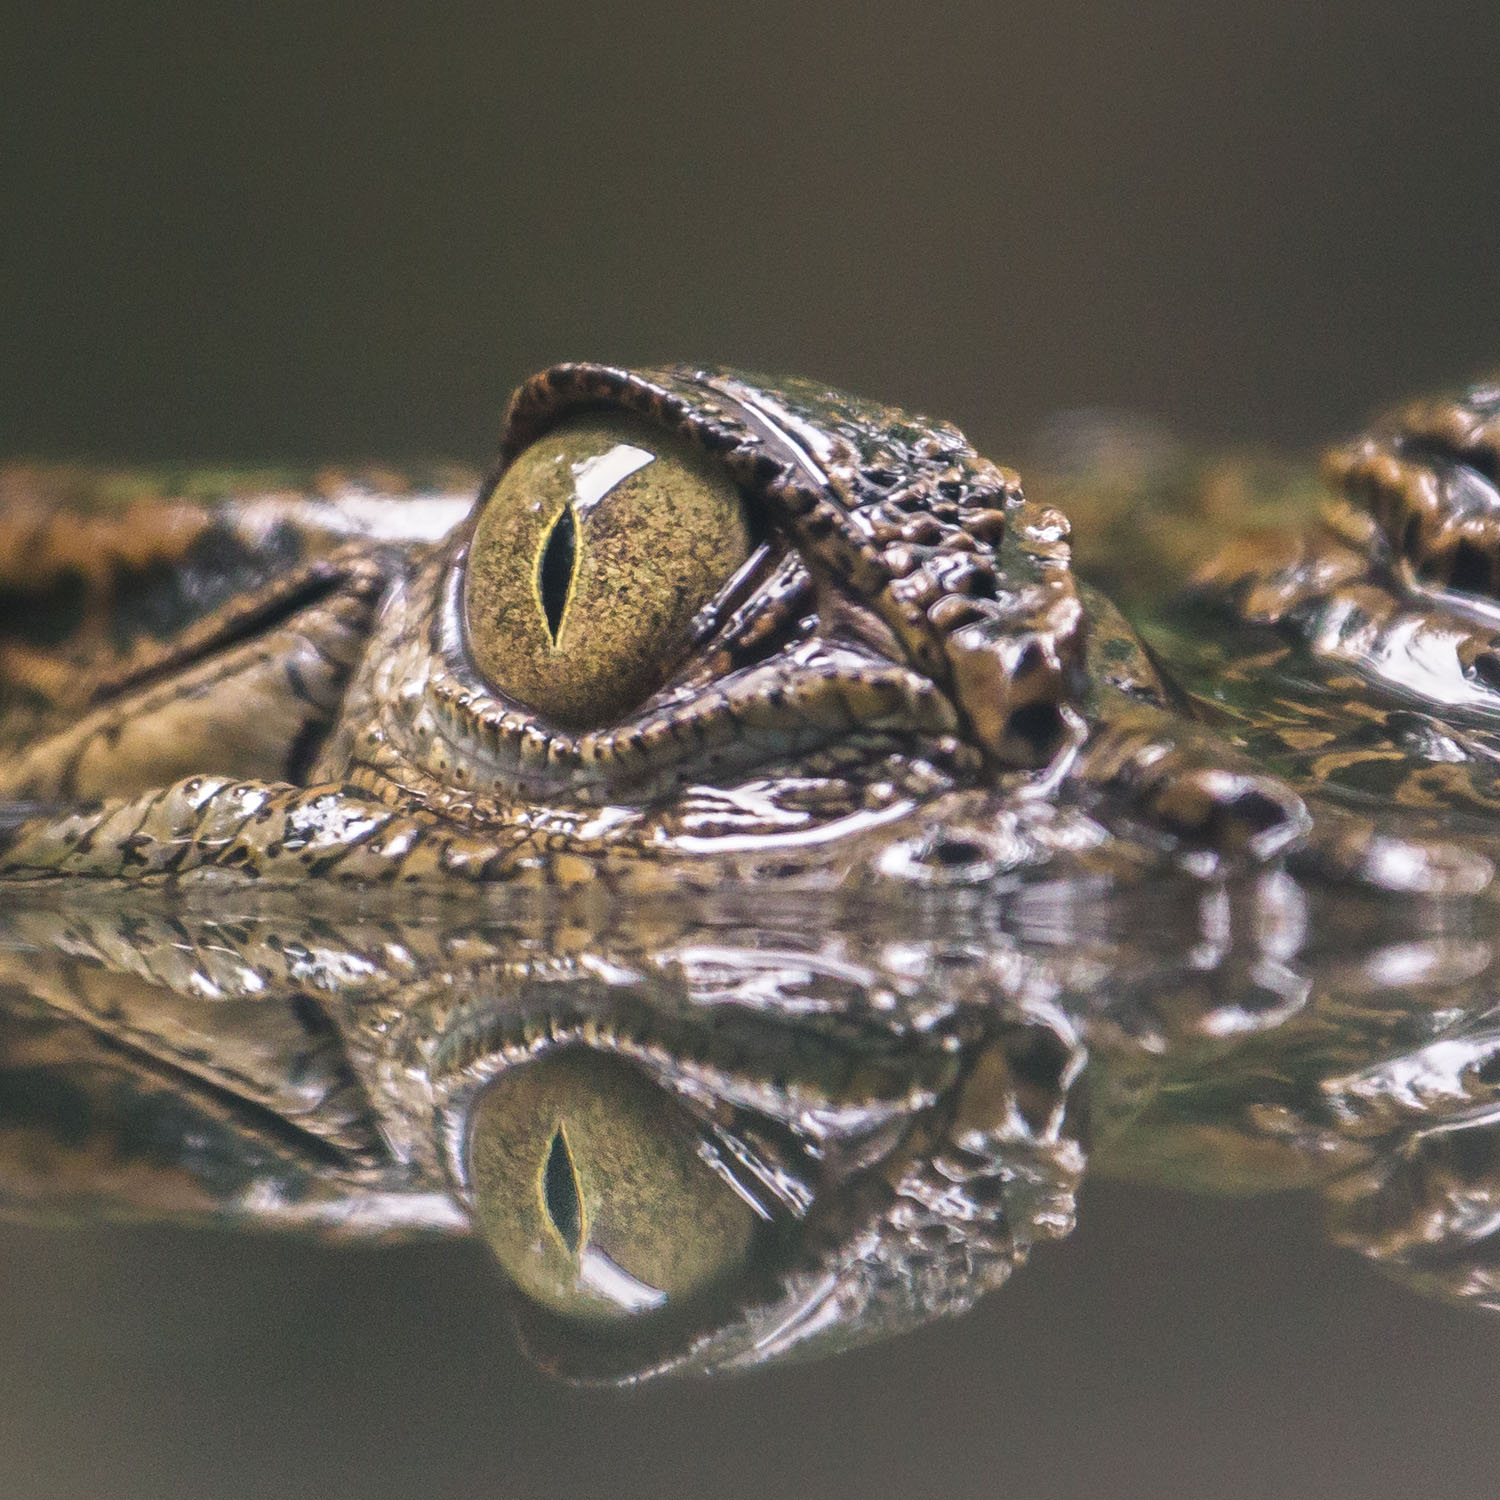 the gator tracking solution